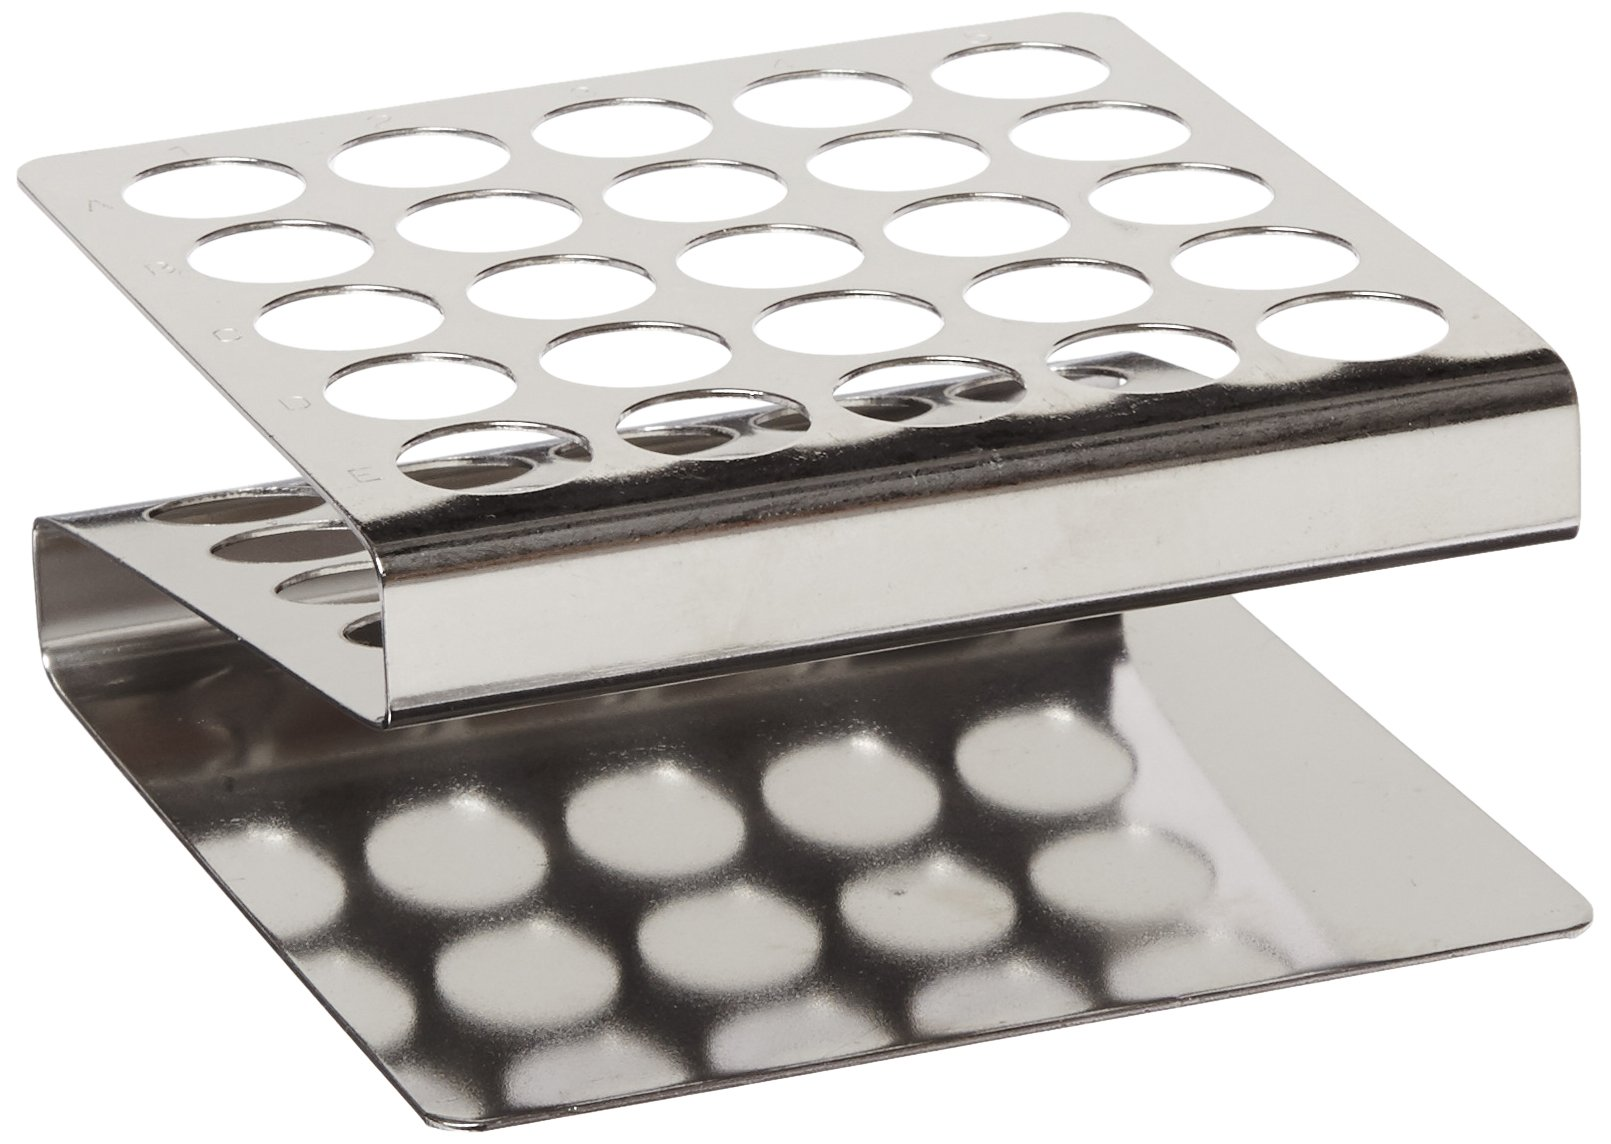 Globe Scientific 457200 Stainless Steel ''Z'' Shape Tube Rack, 16/17mm Tubes, 25-Place